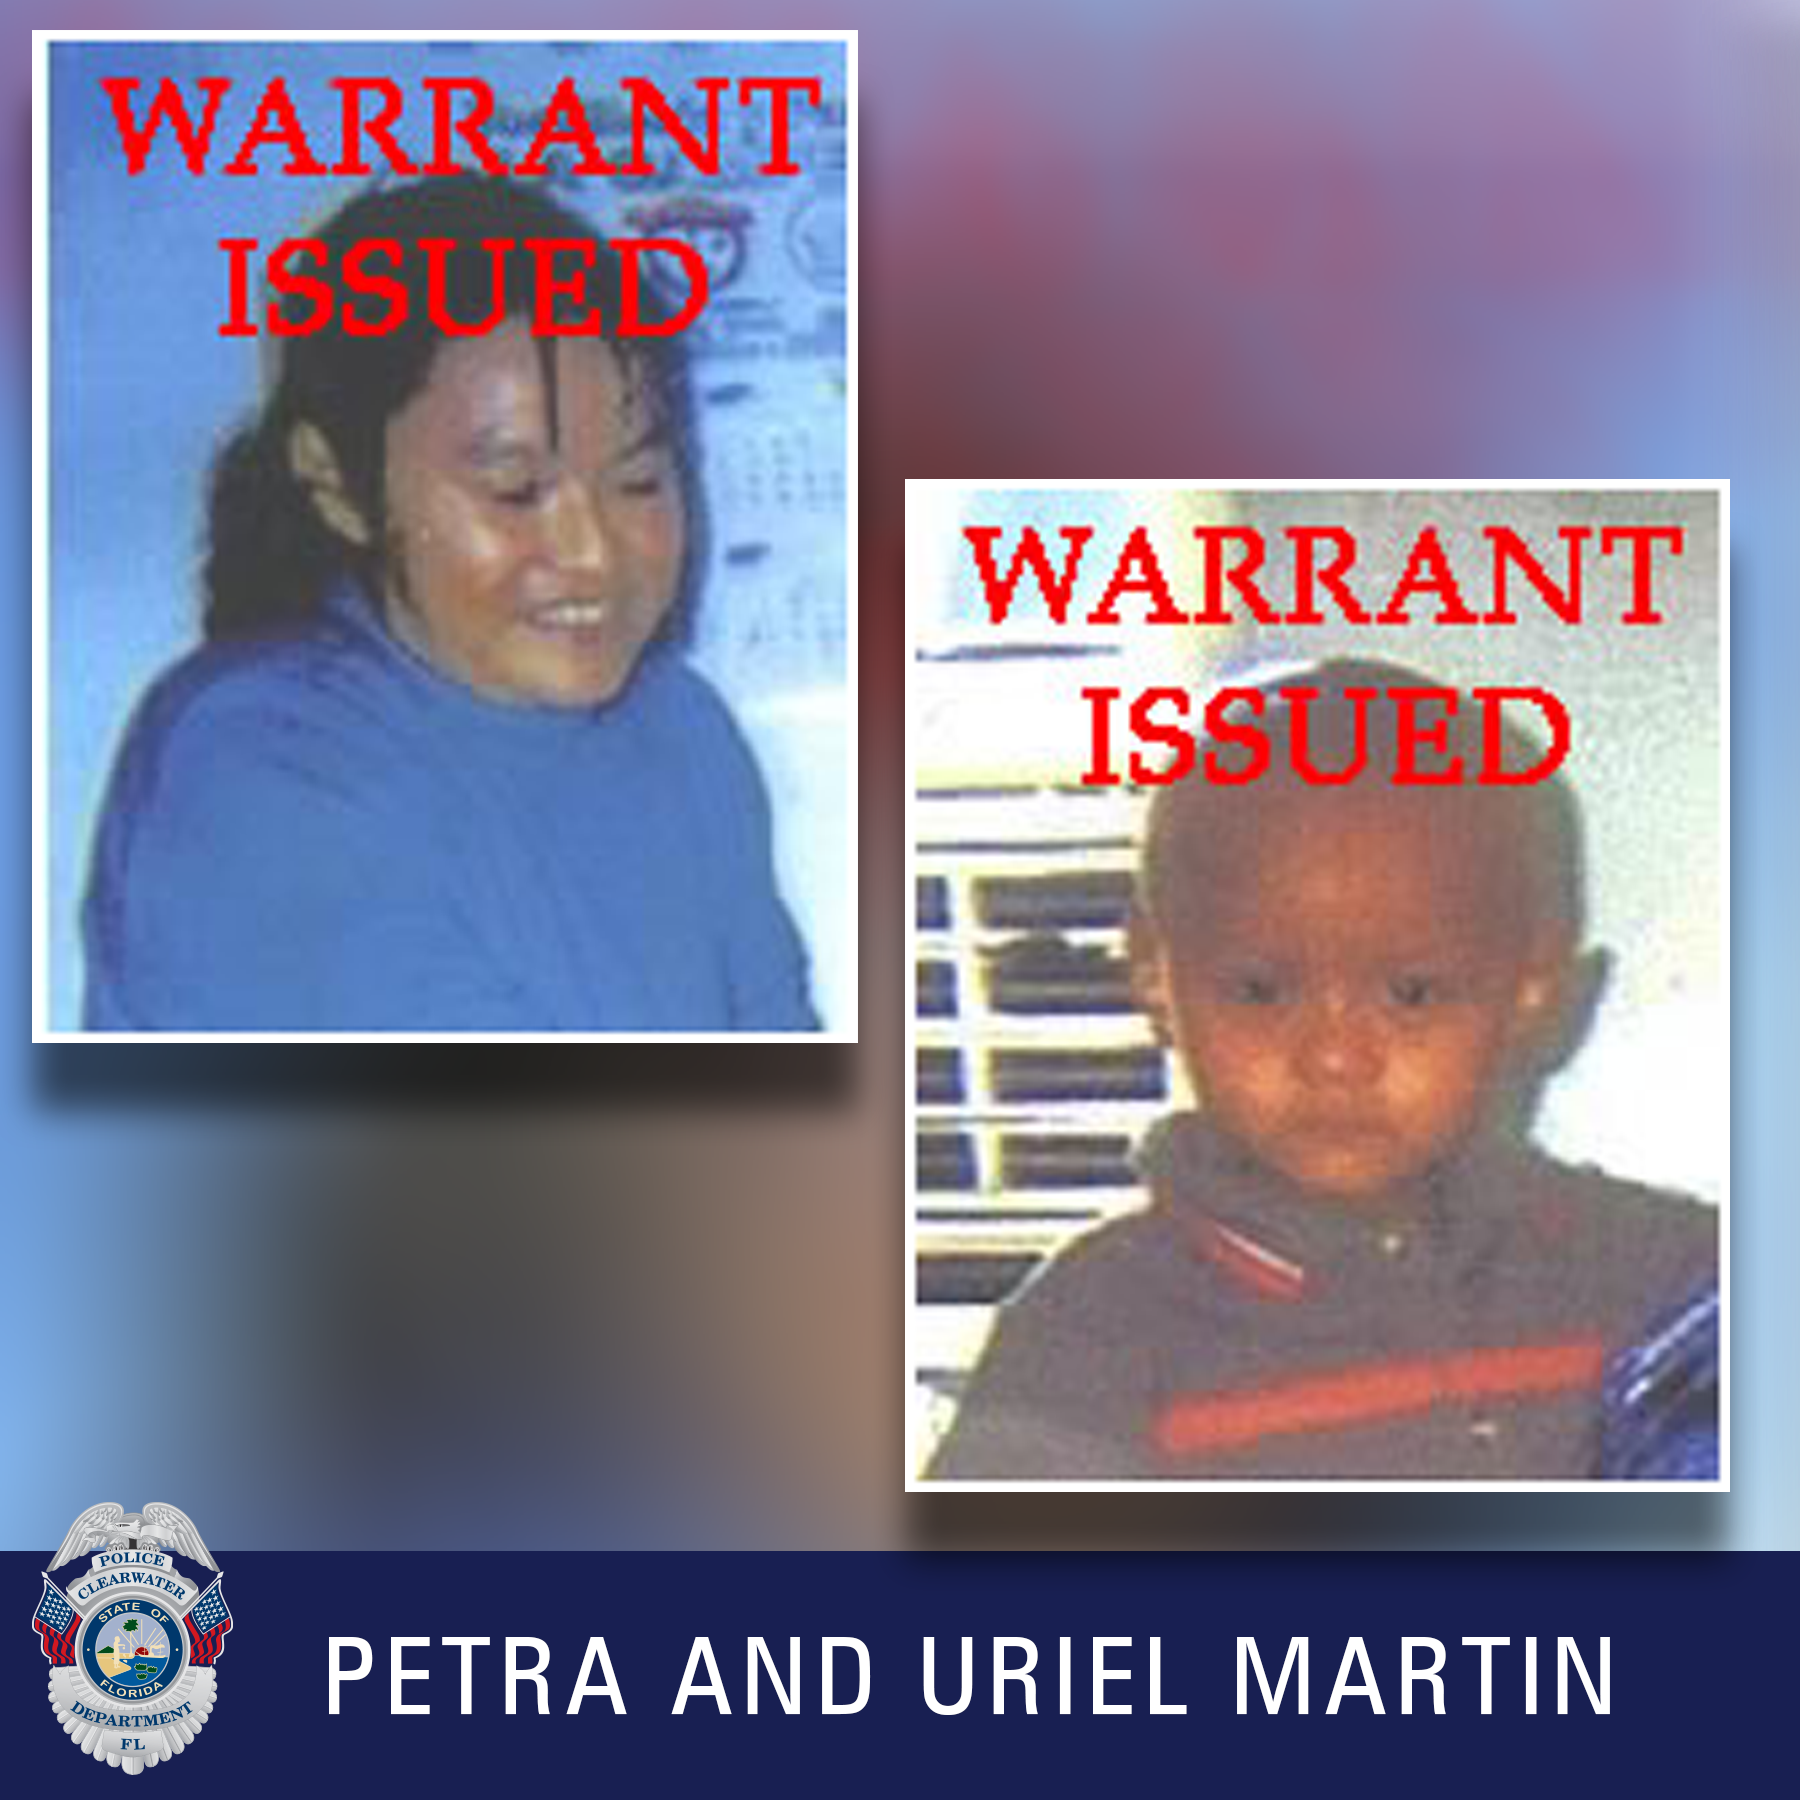 Petra and Uriel Martin, Clearwater Police Department Shield, Female with black hair in a ponytale smiling towards the ground wearing a blue shirt and a young boy with a navy and red striped shirt